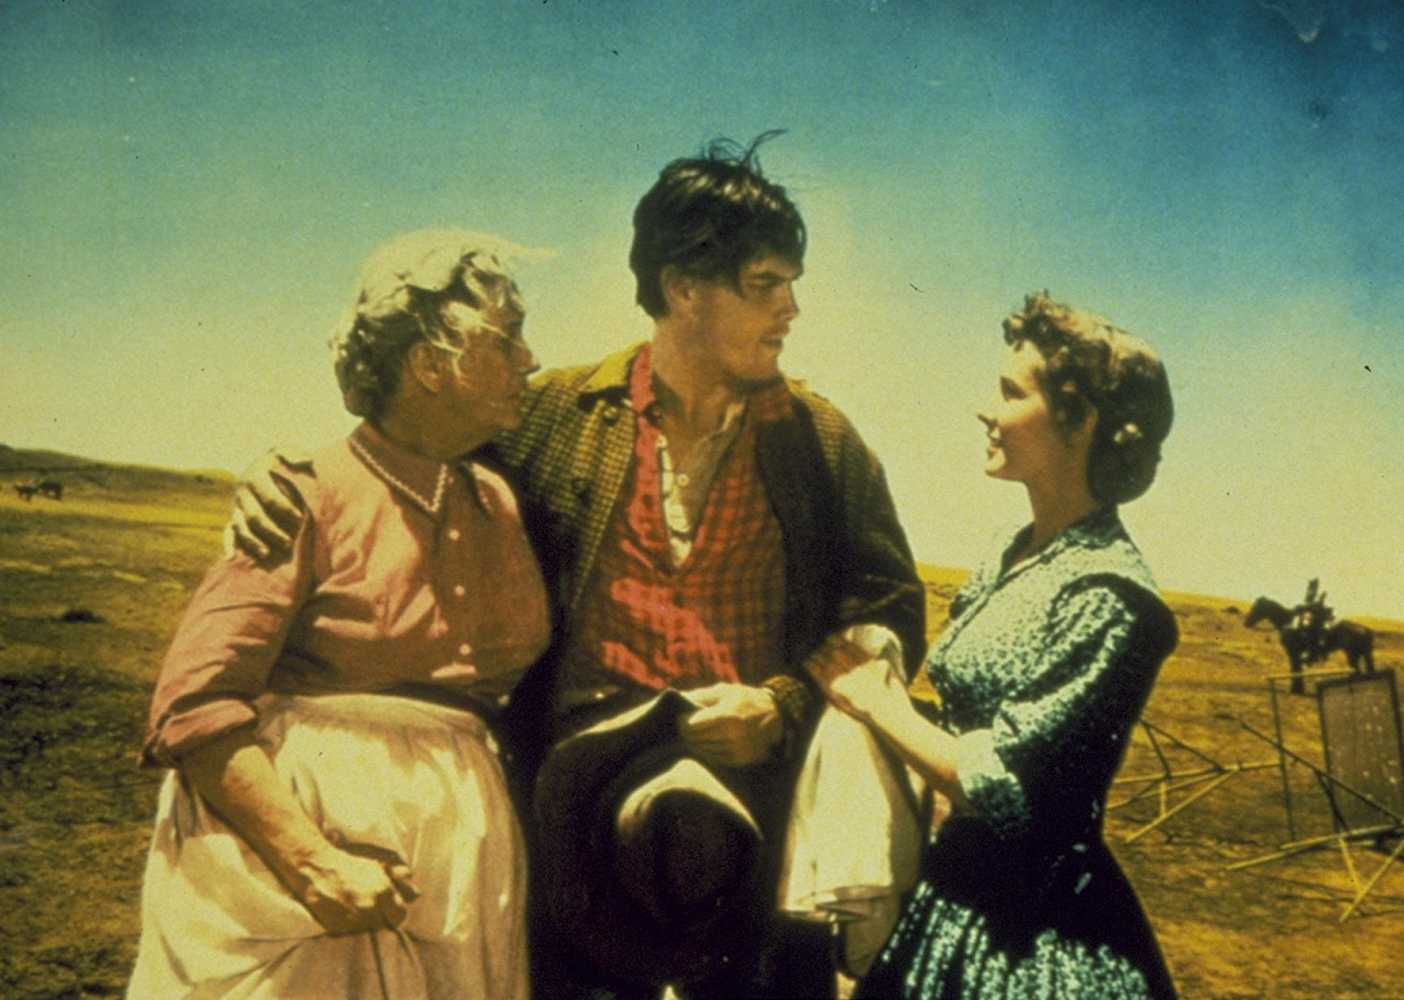 Jeffrey Hunter, Olive Carey, and Vera Miles in The Searchers (1956). (IMDb)